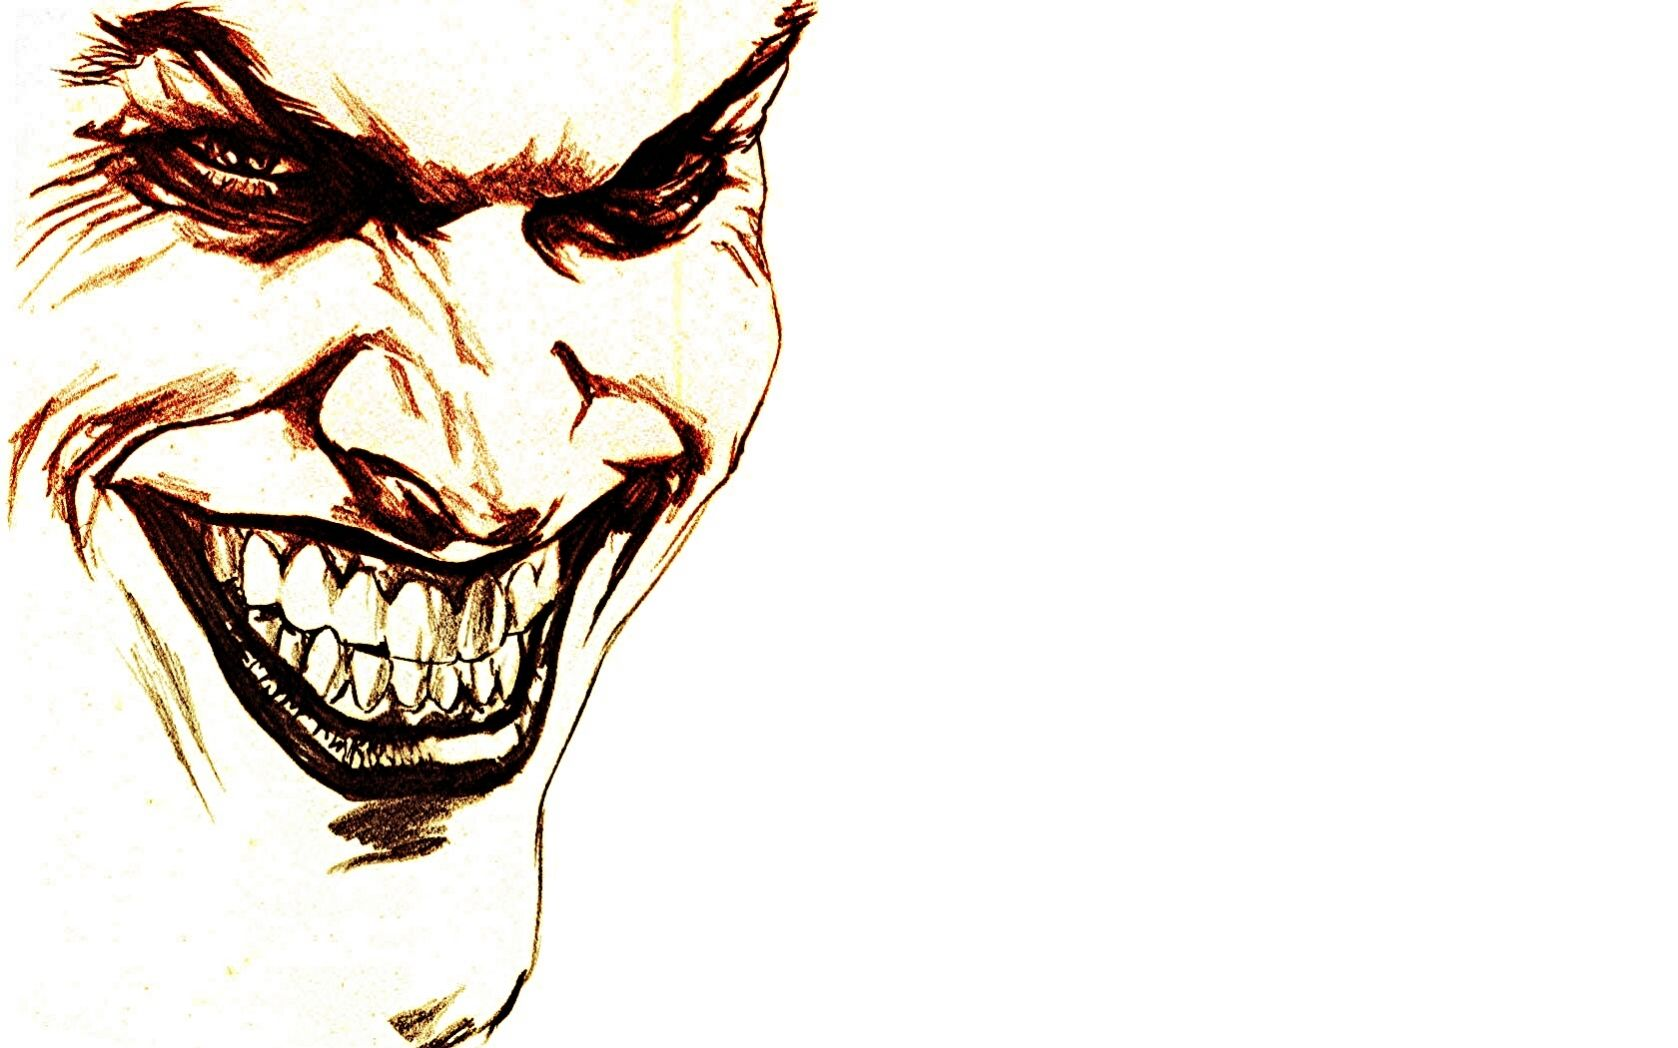 Check out Joker Big Smle HD Wallpapers. We add quality wallpapers, cover pictures and funny pictures on a daily basis.